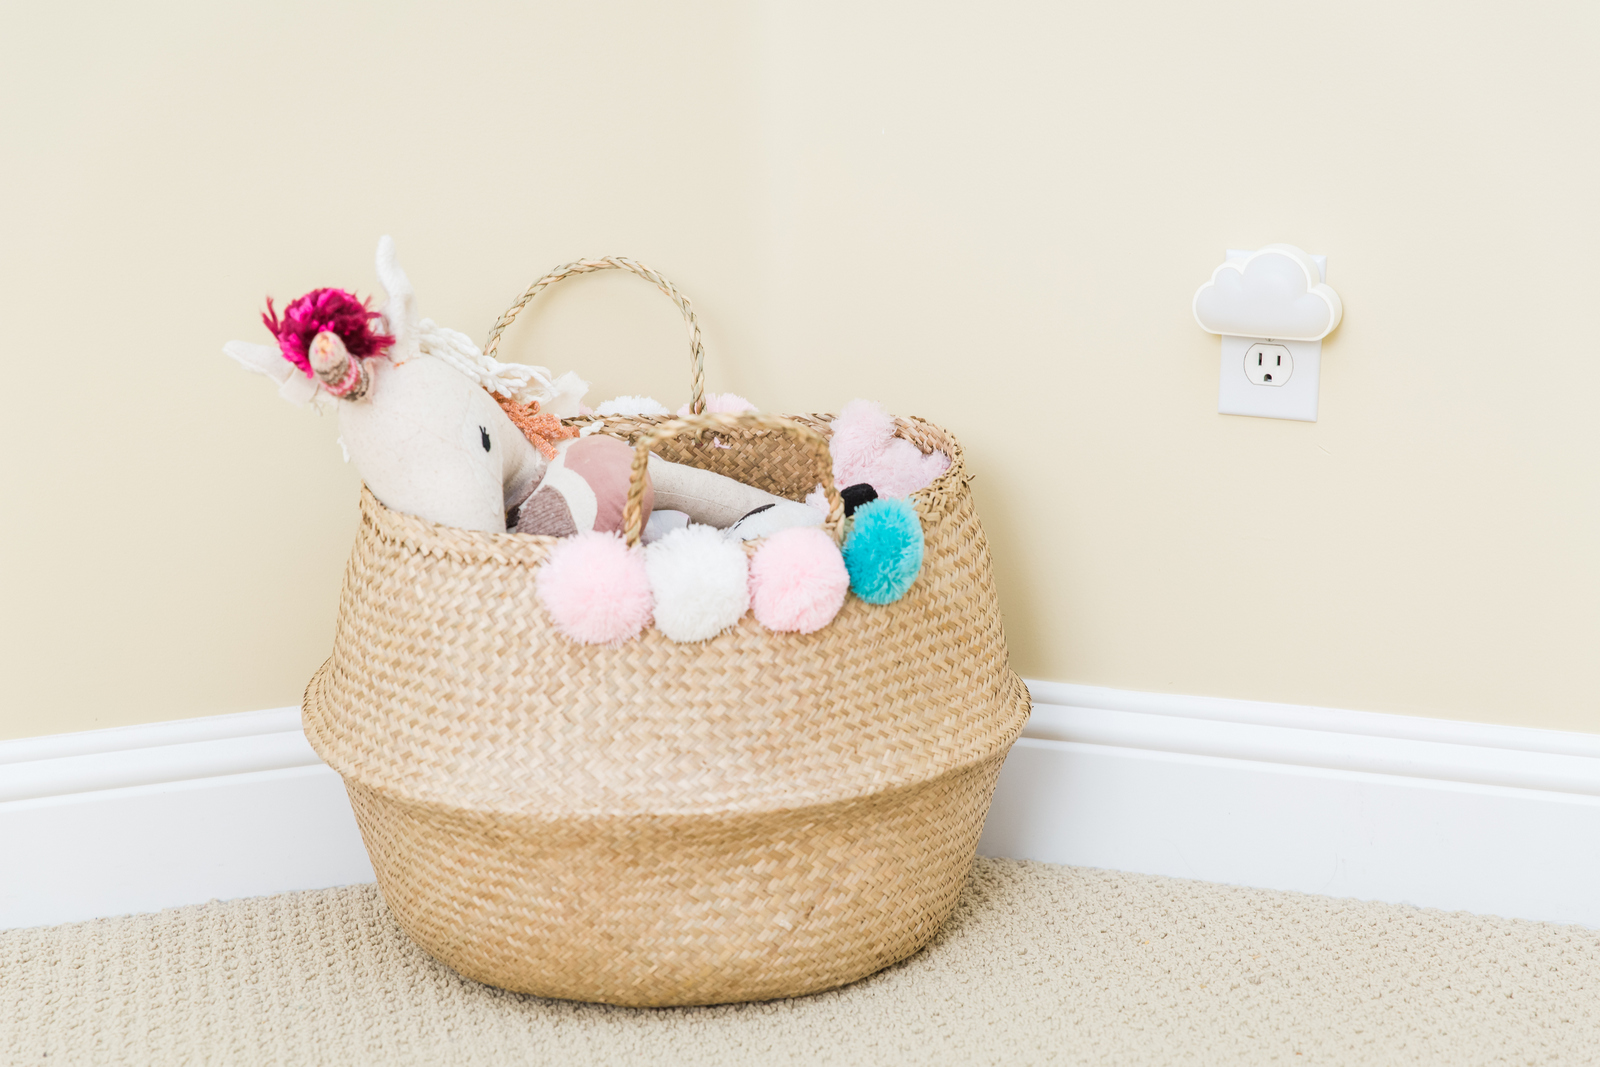 Brickyard Buffalo Guest Editor Week - Sandy A La Mode: Olli Ella Pom Pom Basket